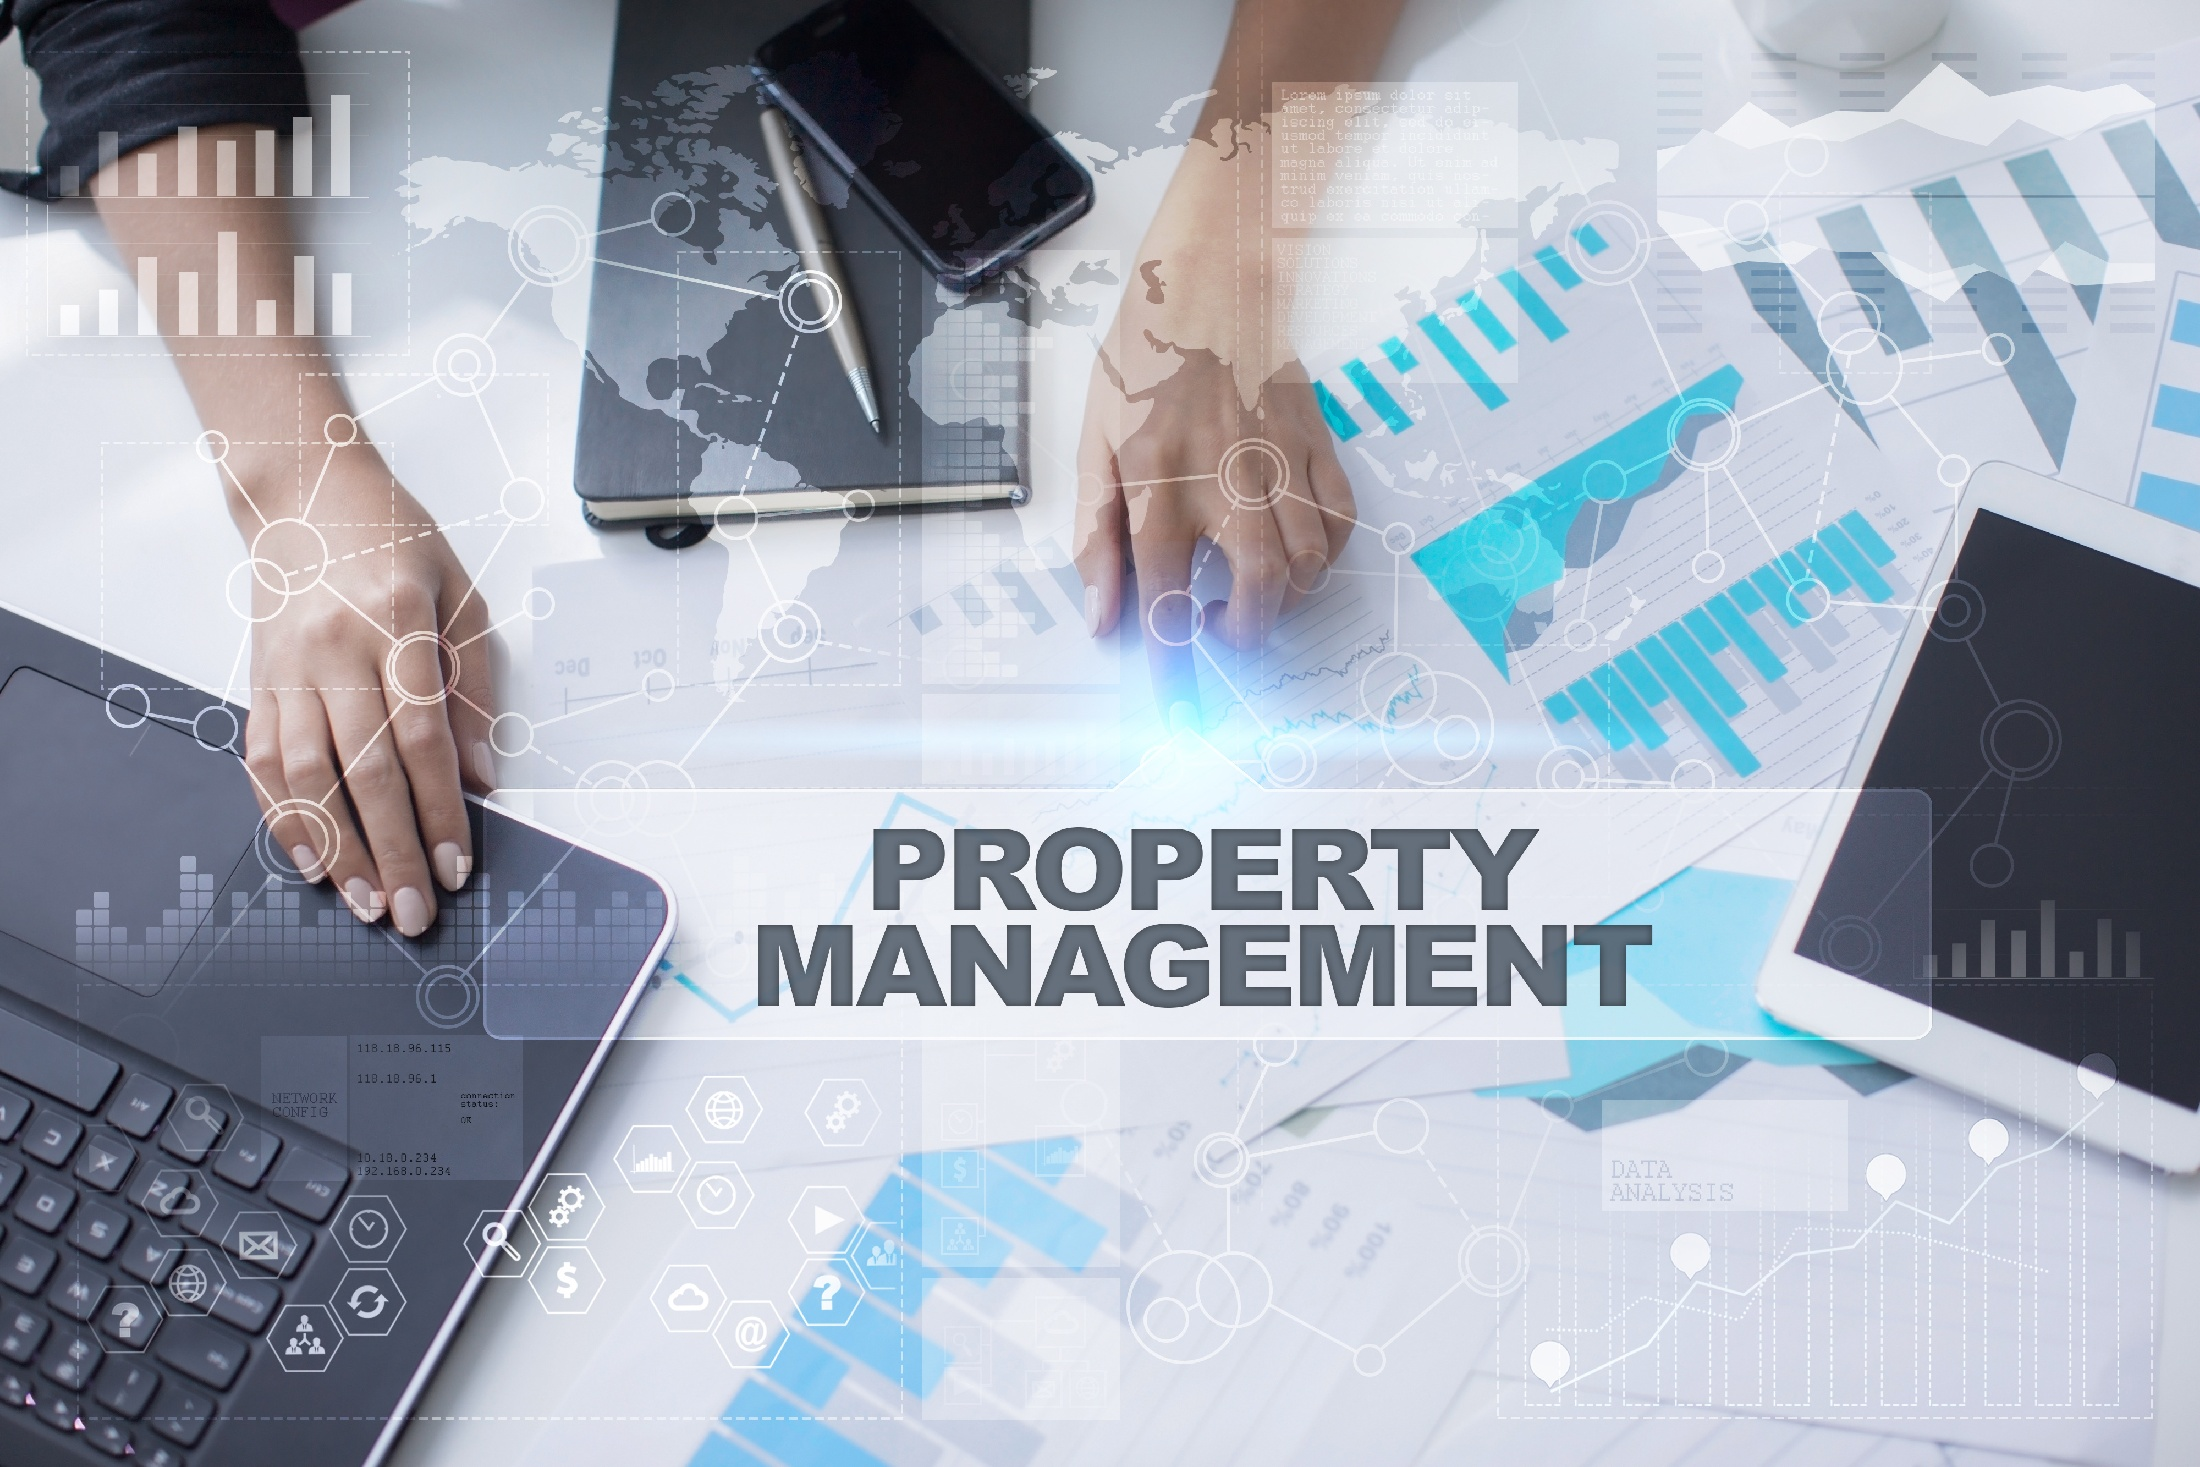 Best Property Management Software and Functions to Look For